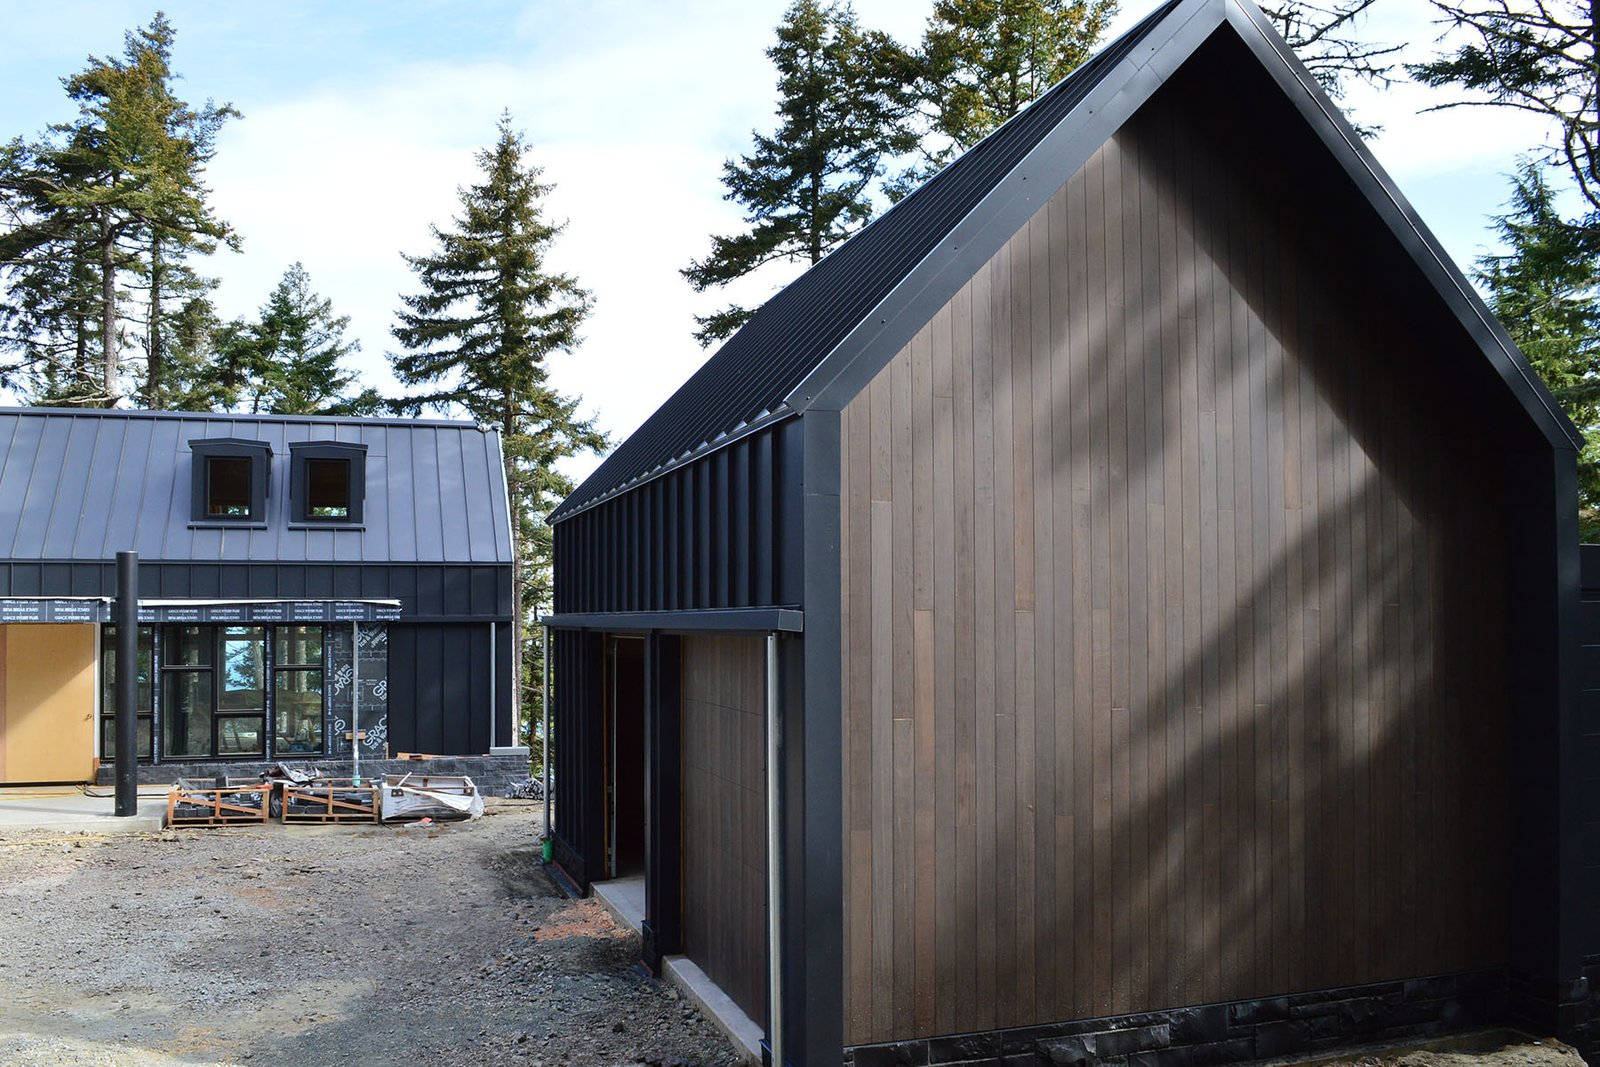 The garage exhibits the same black steel cladding and stained cedar siding as the main structure. Flat dormer windows on the house provide natural light and add visual interest to the overall shape. Paint it Black: One Couple's Journey to Minimalism - Photo 2 of 5